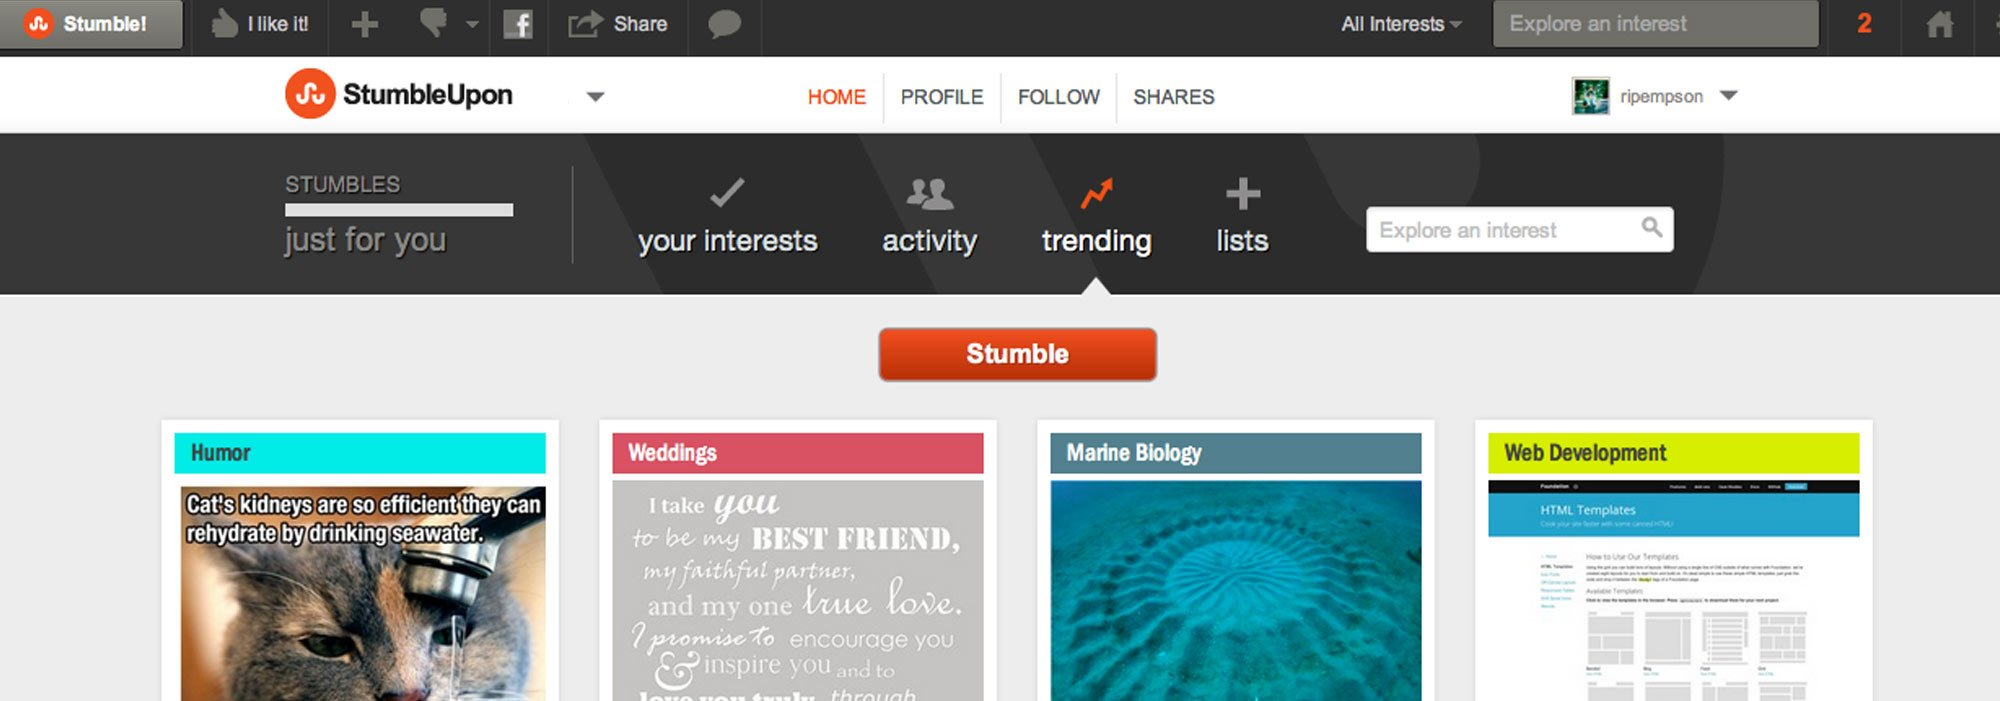 StumbleUpon Marketing Agency - Solution Web Designs